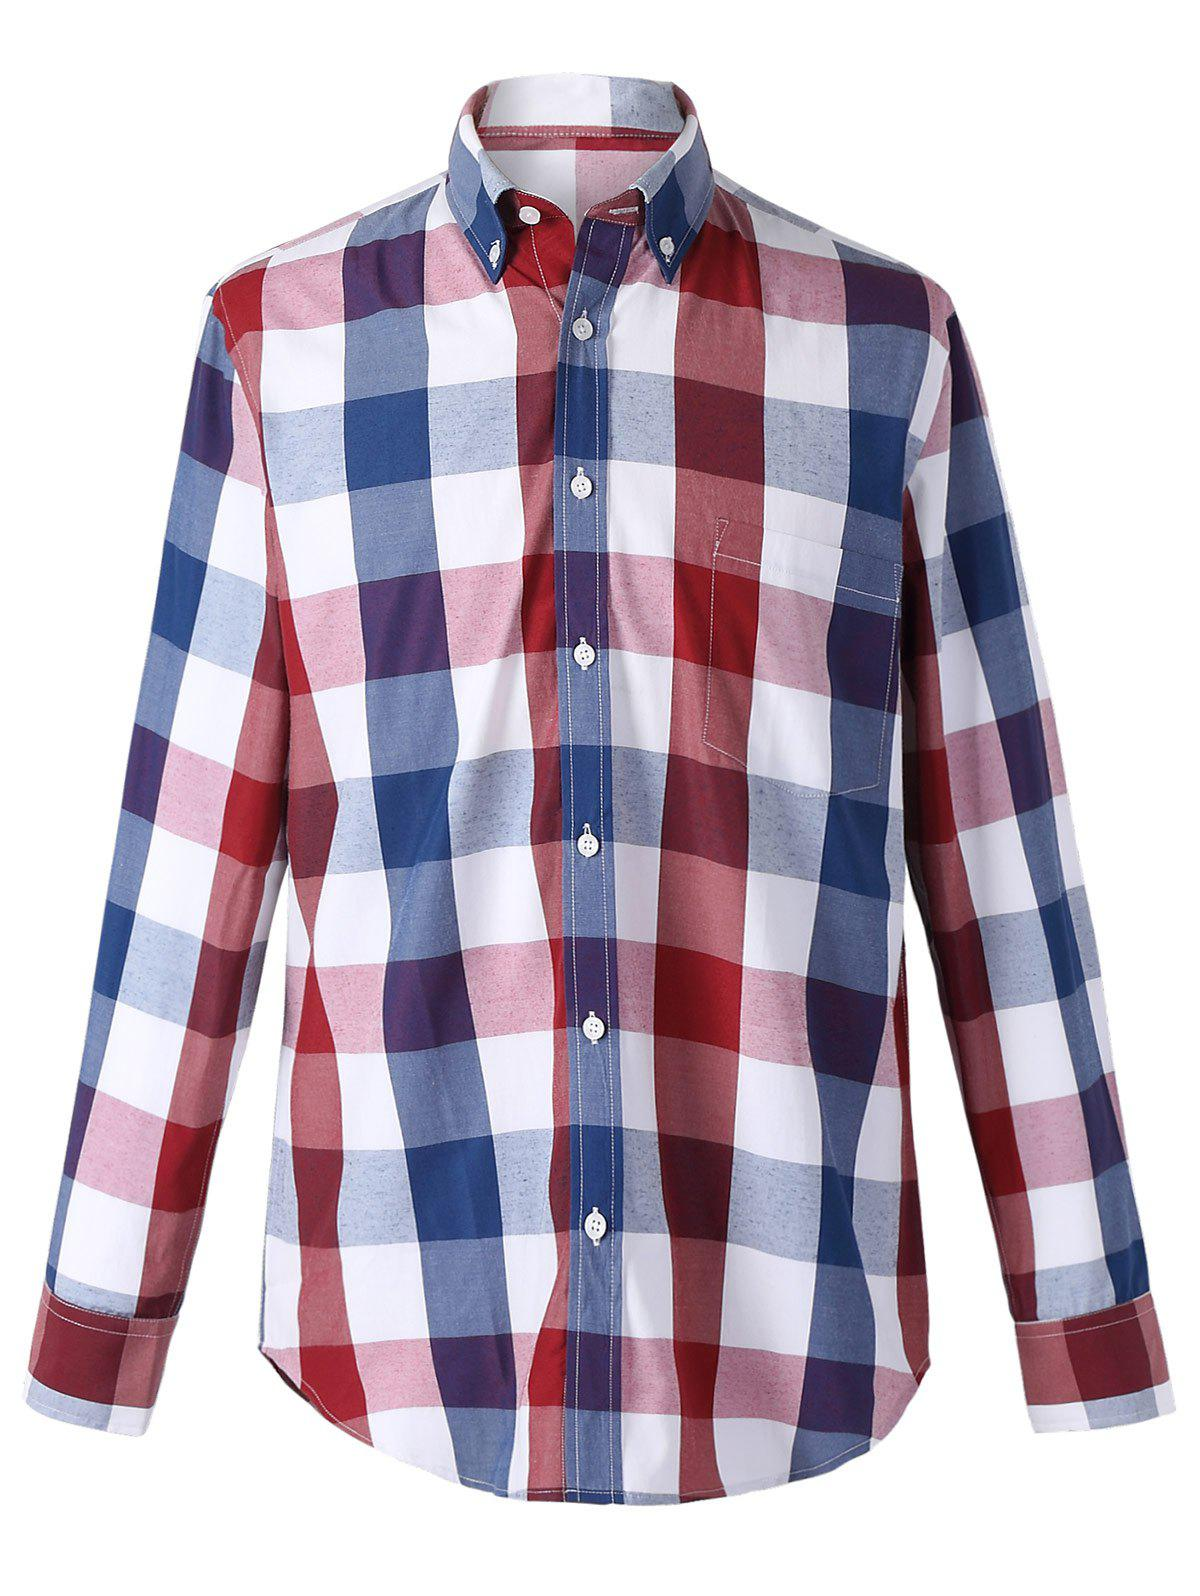 Classic Turn-Down Collar Long Sleeves Red and Blue Plaid Shirt For Men - BLUE/RED 2XL